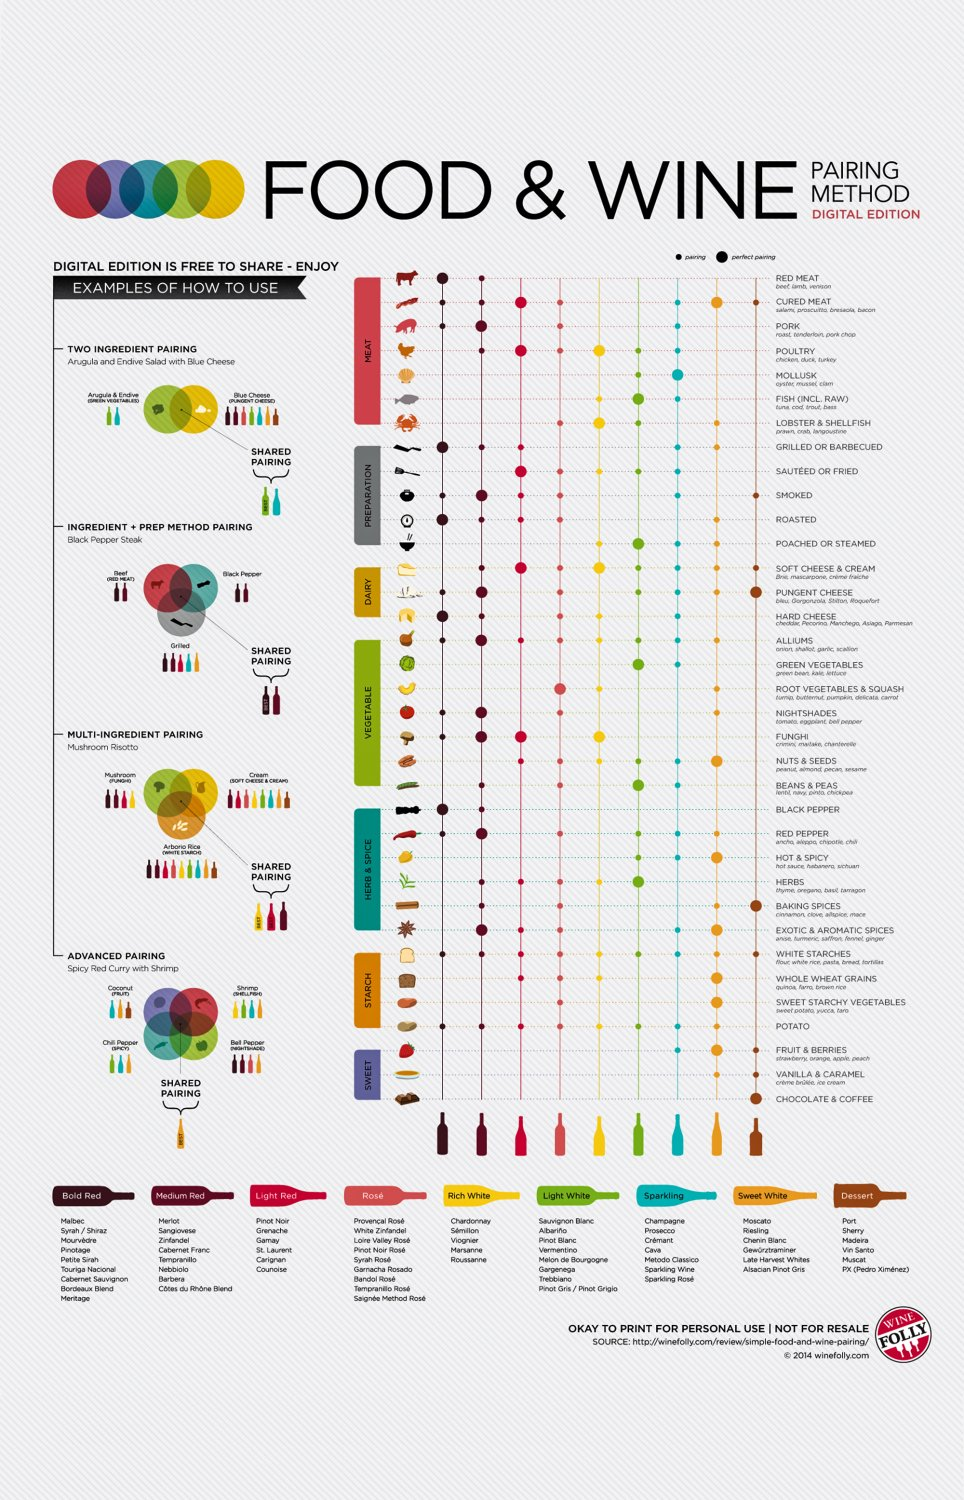 Food and Wine Pairing Method Infographic Chart  18x28 inches Canvas Print